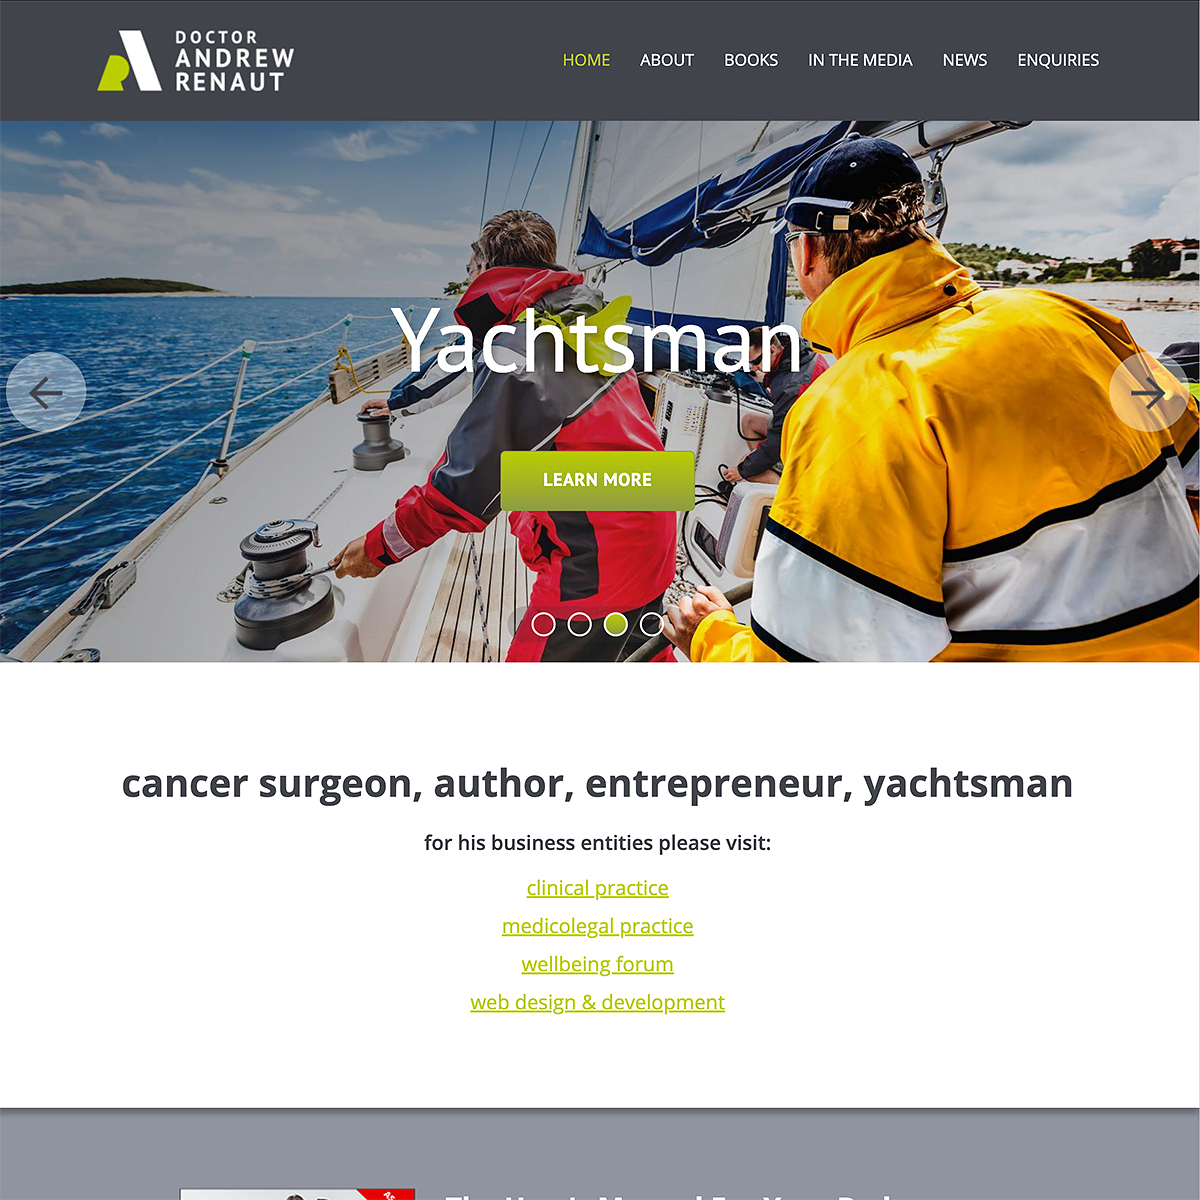 Dr Andrew Renaut - Homepage Banner - Yachtsman